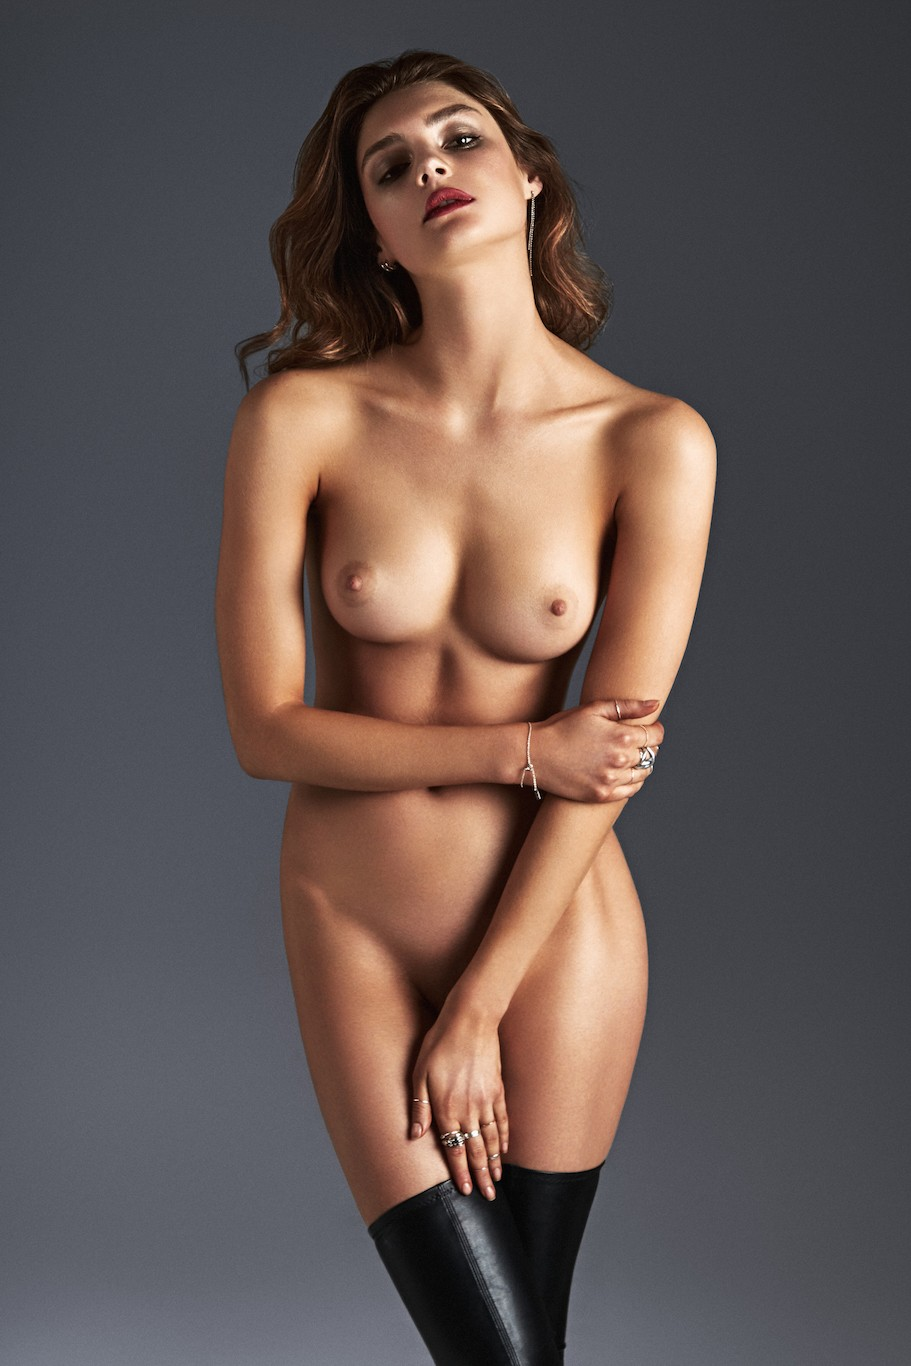 Vika levina topless nude (49 photos), Boobs Celebrites pictures